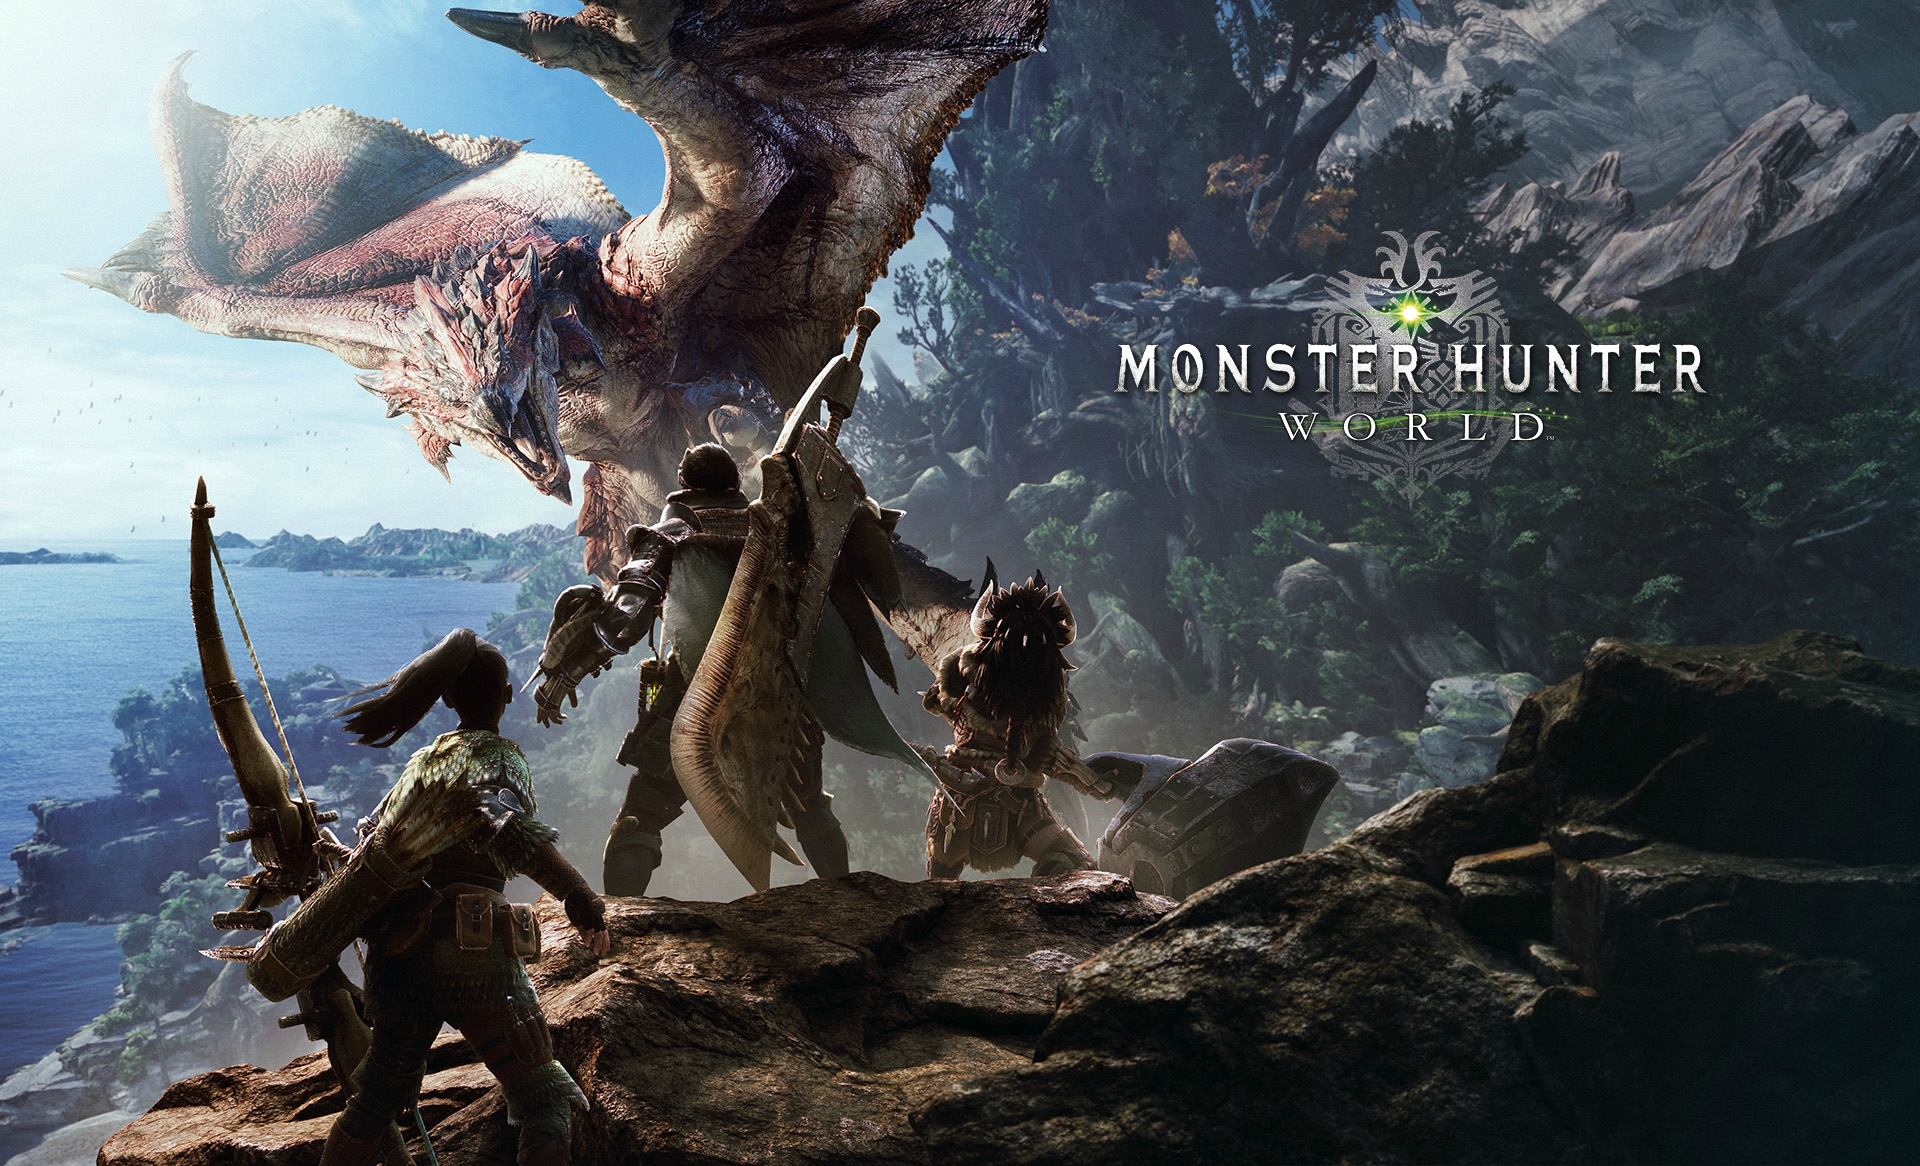 monster hunter world hd wallpaper : monsterhunter